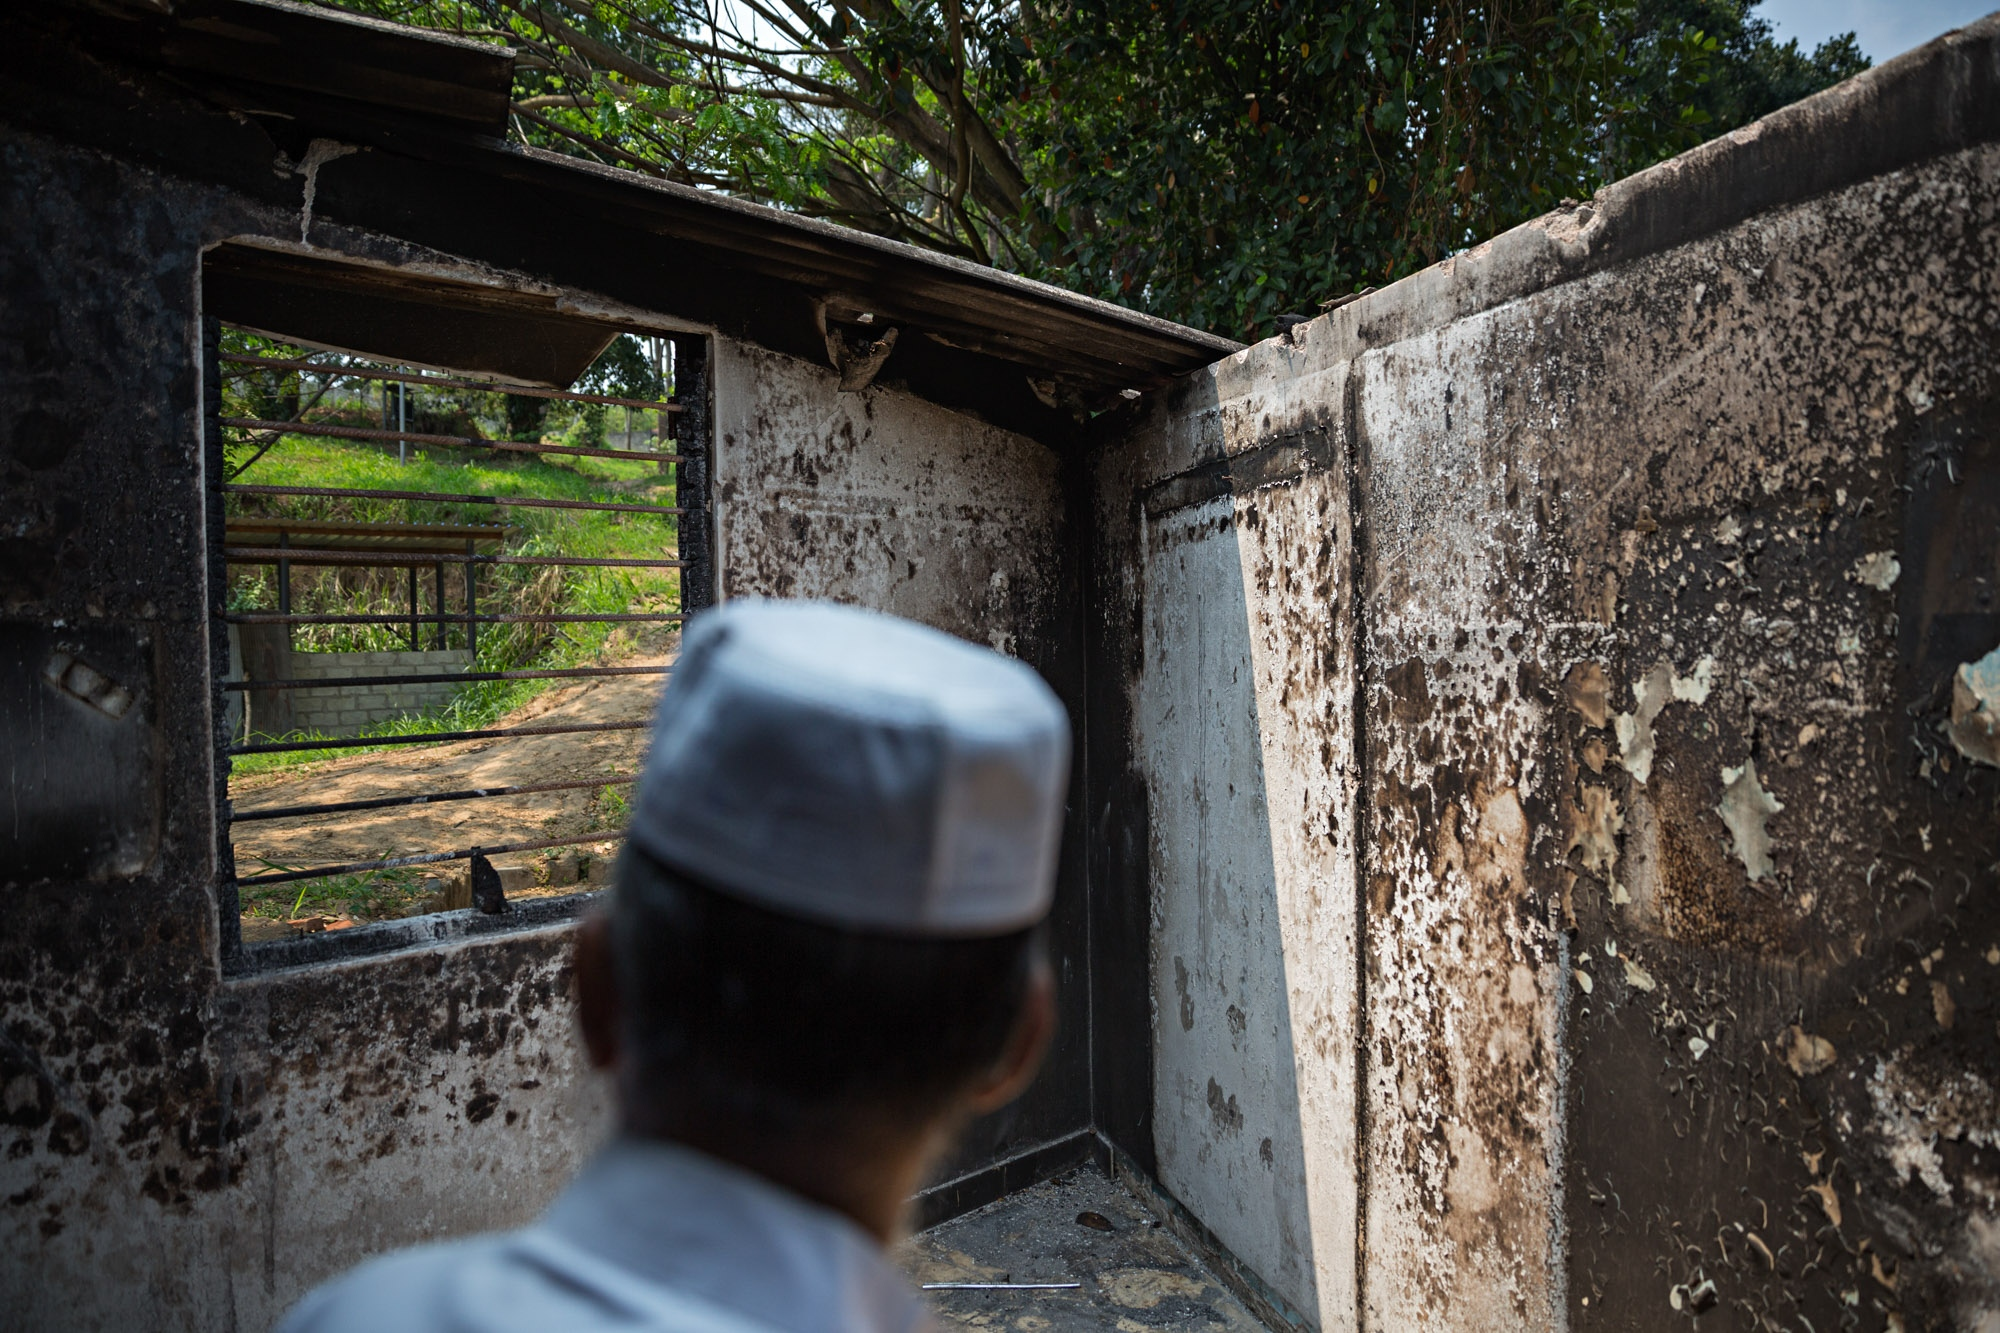 A man looks out of a burned out window at Masjidul Lafir Jummah Mosque in Digana, Sri Lanka.